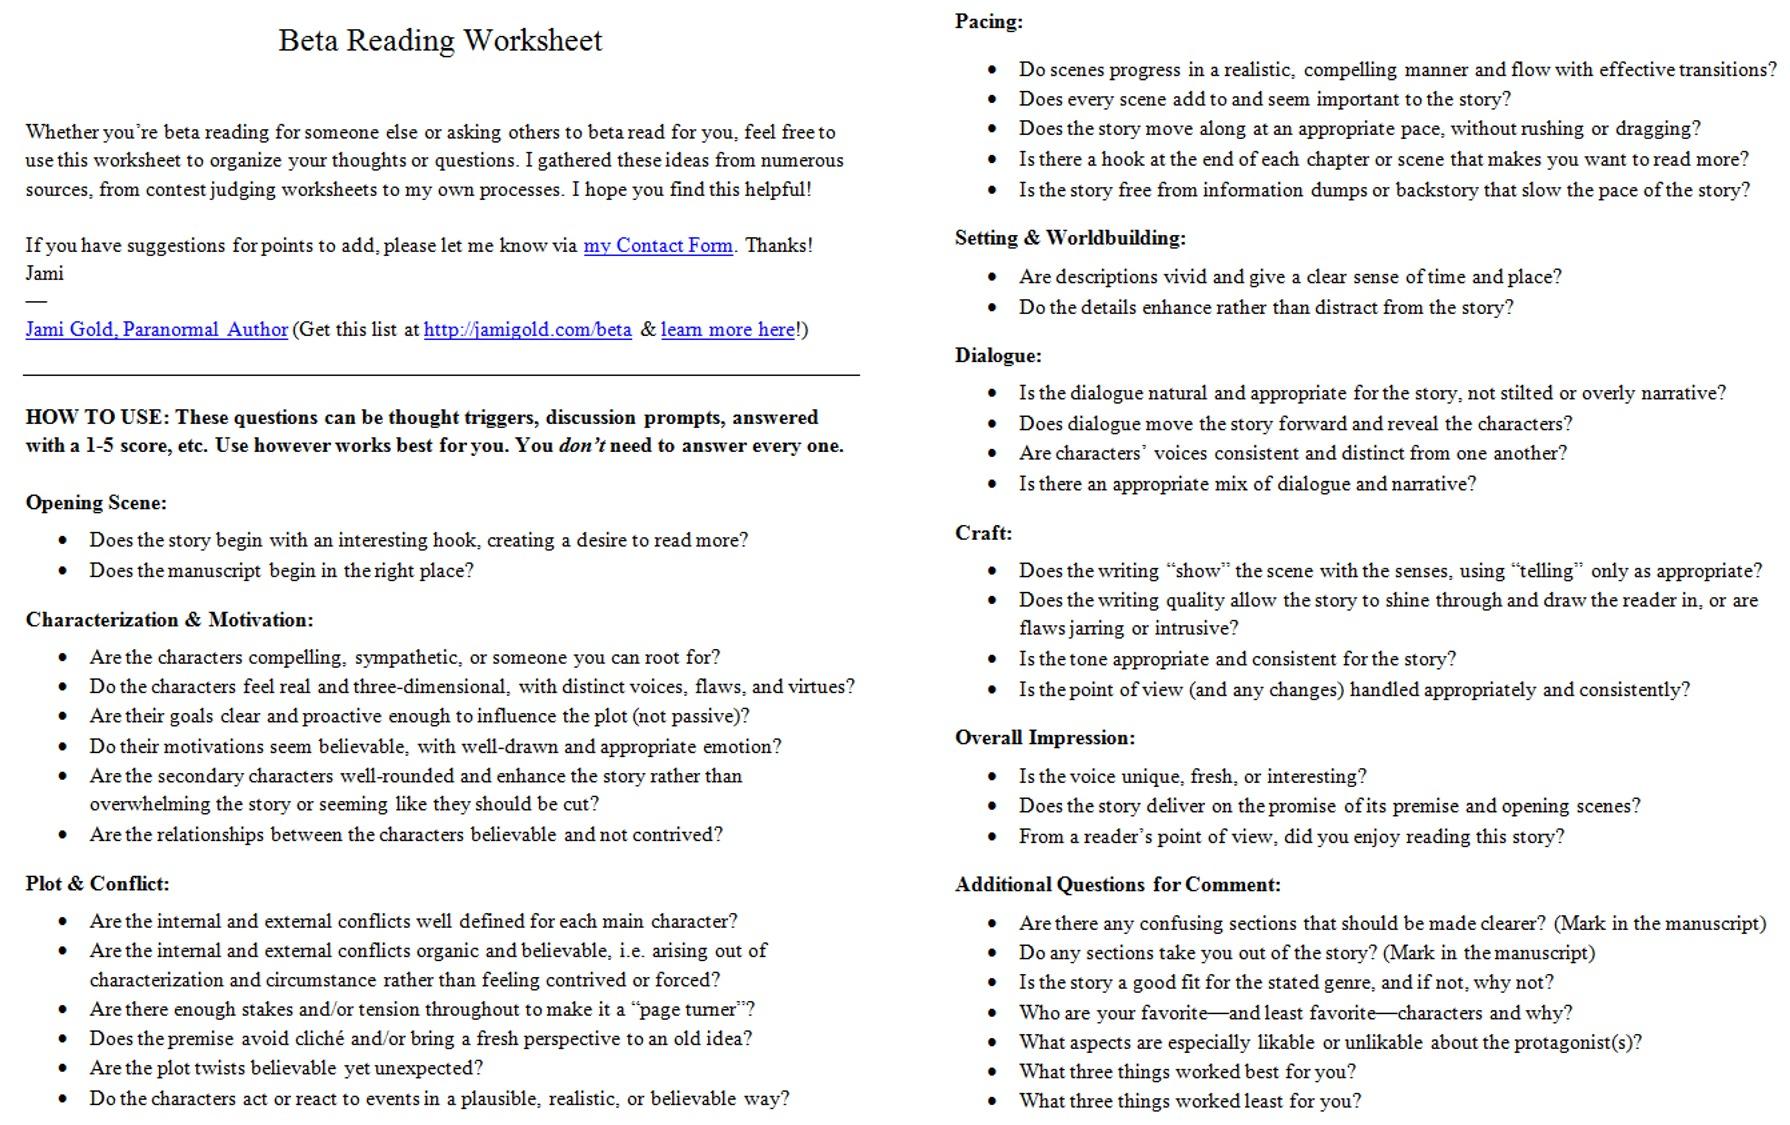 Weirdmailus  Picturesque Worksheets For Writers  Jami Gold Paranormal Author With Hot Screen Shot Of The Twopage Beta Reading Worksheet With Captivating Facial Expressions Worksheets Also Or Worksheets Free In Addition Easter Worksheets Esl And Dividing Money Worksheet As Well As Psychology Review Worksheet Additionally Order Of Operations Worksheets Grade  From Jamigoldcom With Weirdmailus  Hot Worksheets For Writers  Jami Gold Paranormal Author With Captivating Screen Shot Of The Twopage Beta Reading Worksheet And Picturesque Facial Expressions Worksheets Also Or Worksheets Free In Addition Easter Worksheets Esl From Jamigoldcom